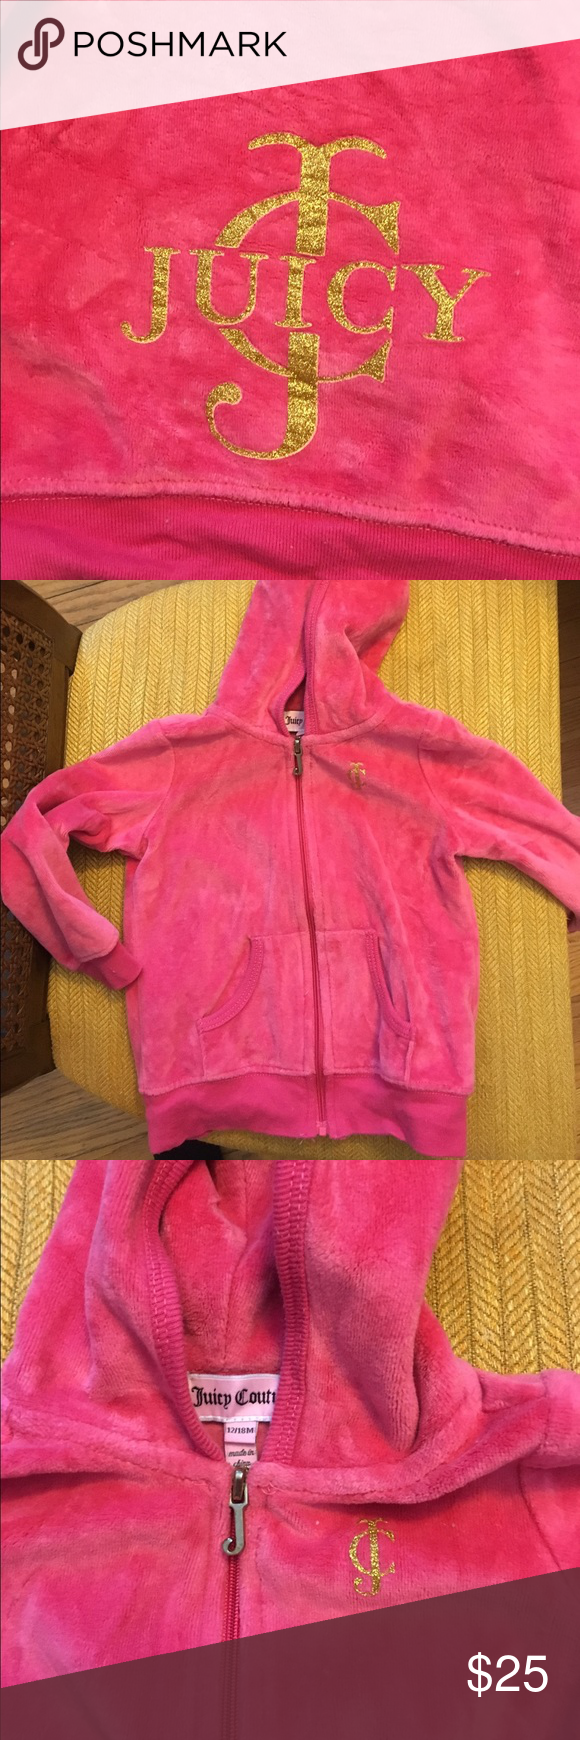 Juicy Couture Sweatsuit toddler 18 months Worn once! Pet free smoke free home! Juicy Couture Matching Sets